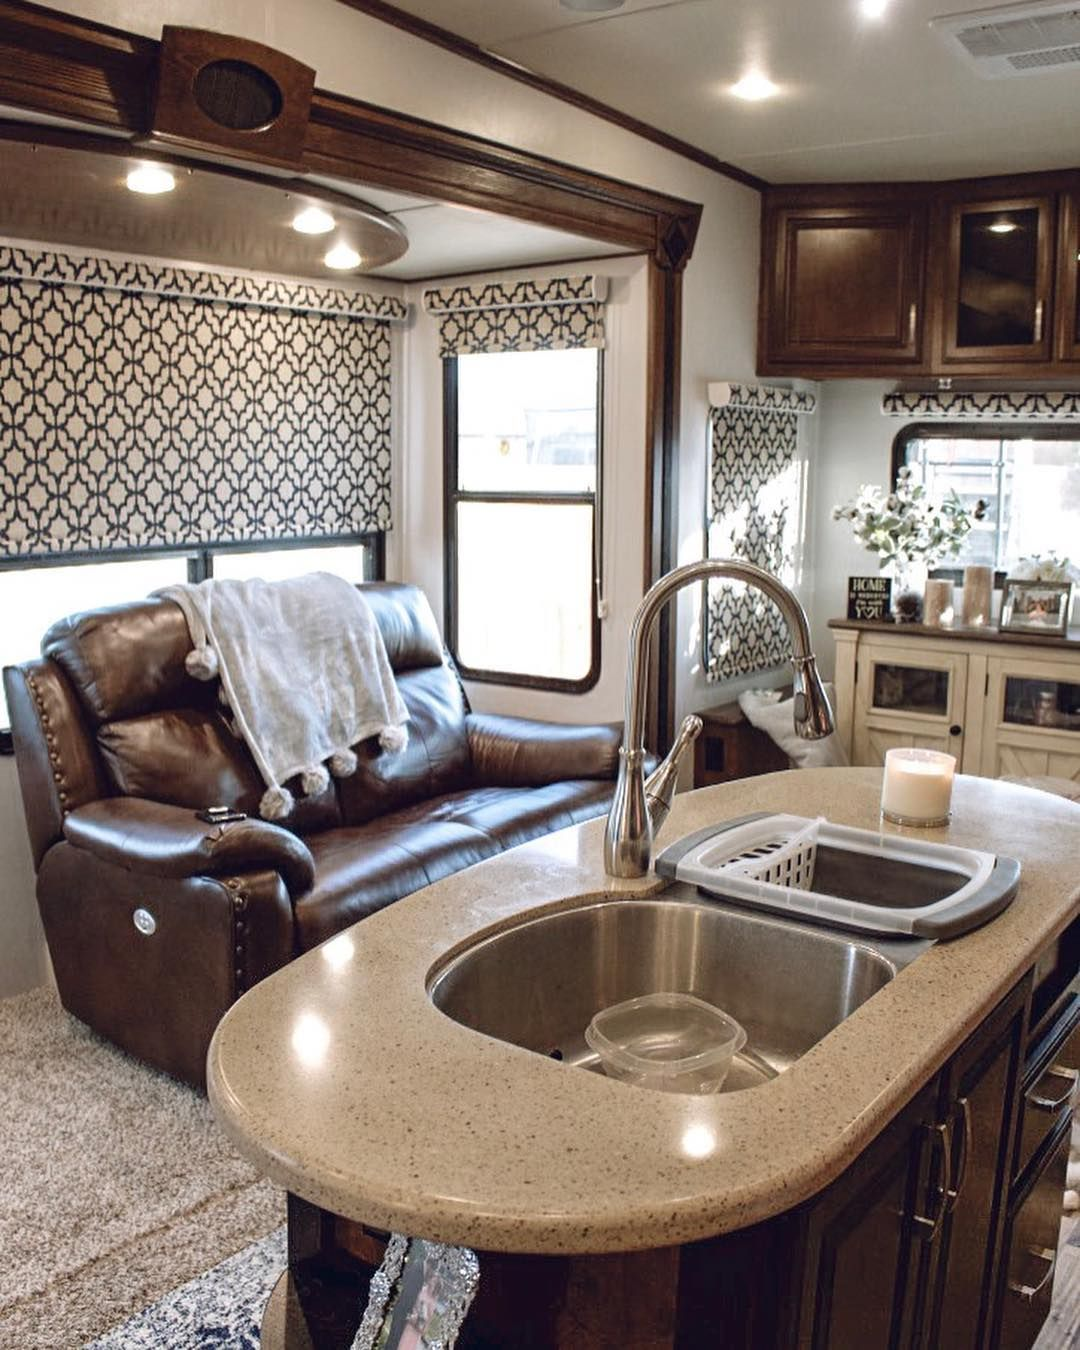 RV living room complete ️ next on our agend | Rv decor, Rv ...